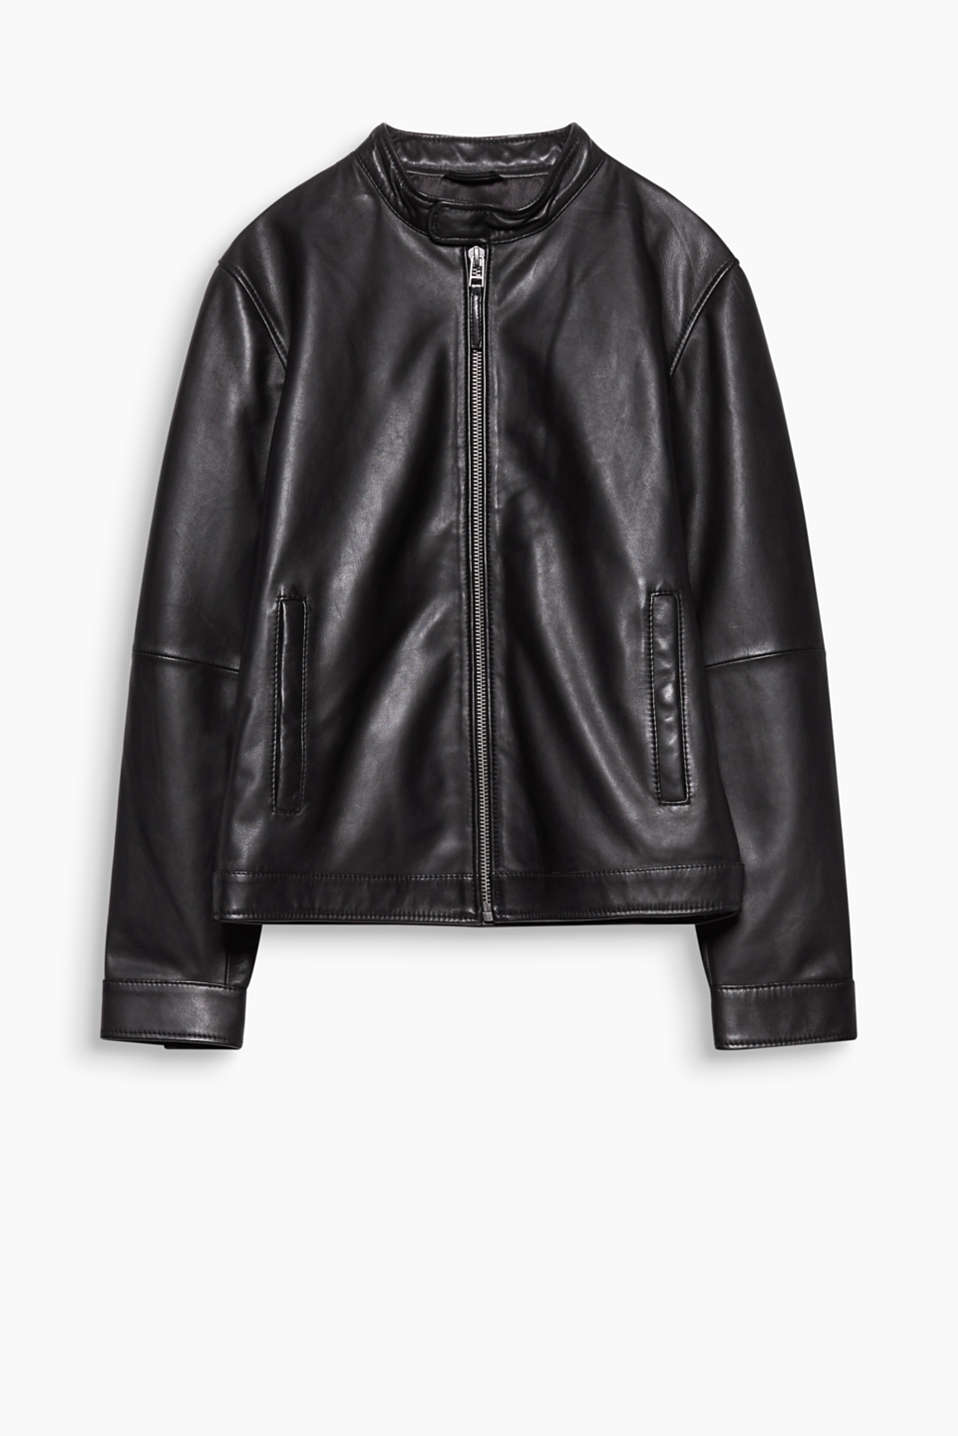 A high-quality fashion essential! This soft nappa leather jacket features subtle details.